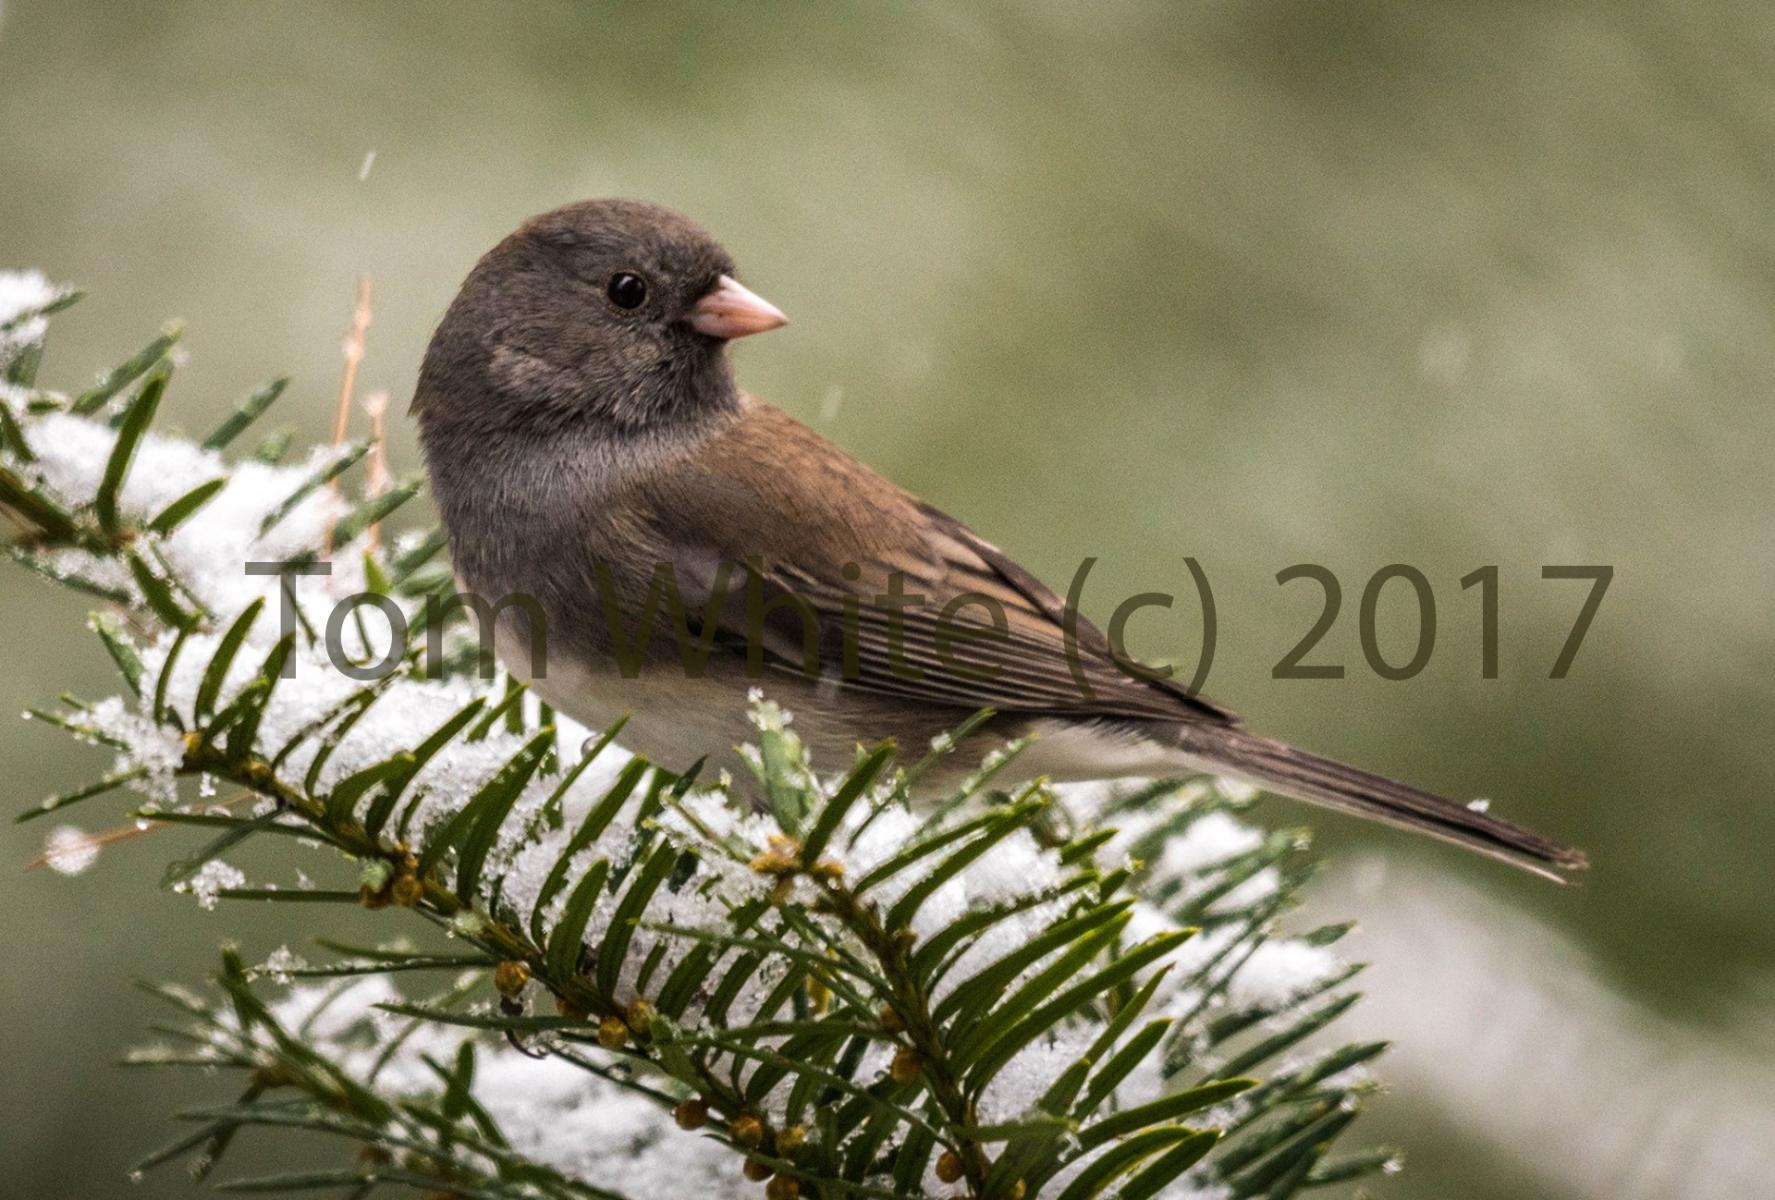 Picture of a Junco bird